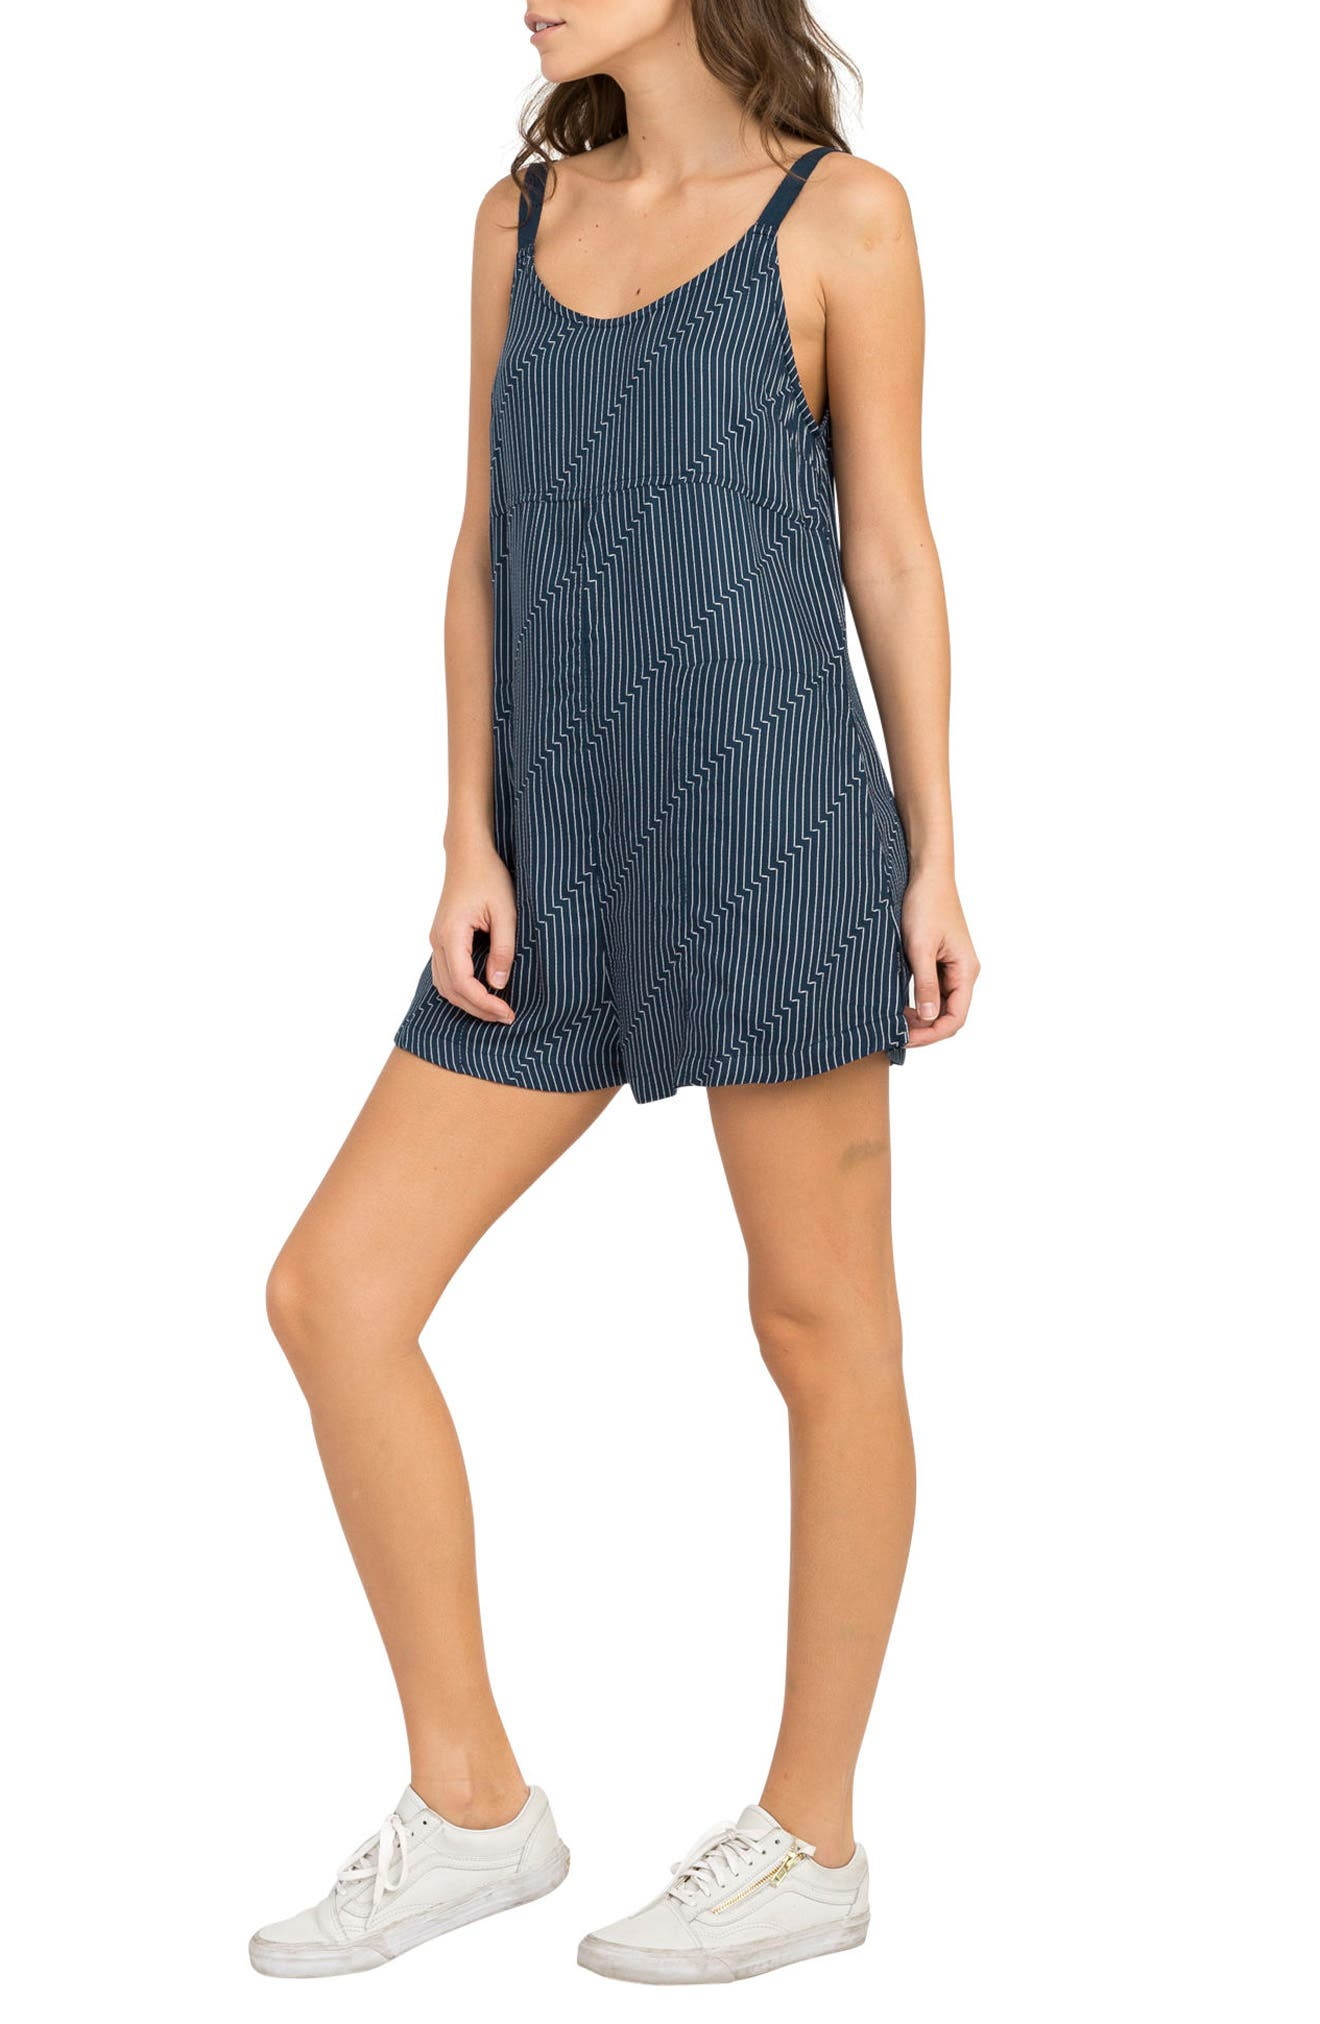 Jury's Out Zigzag Romper,                             Main thumbnail 1, color,                             Navy